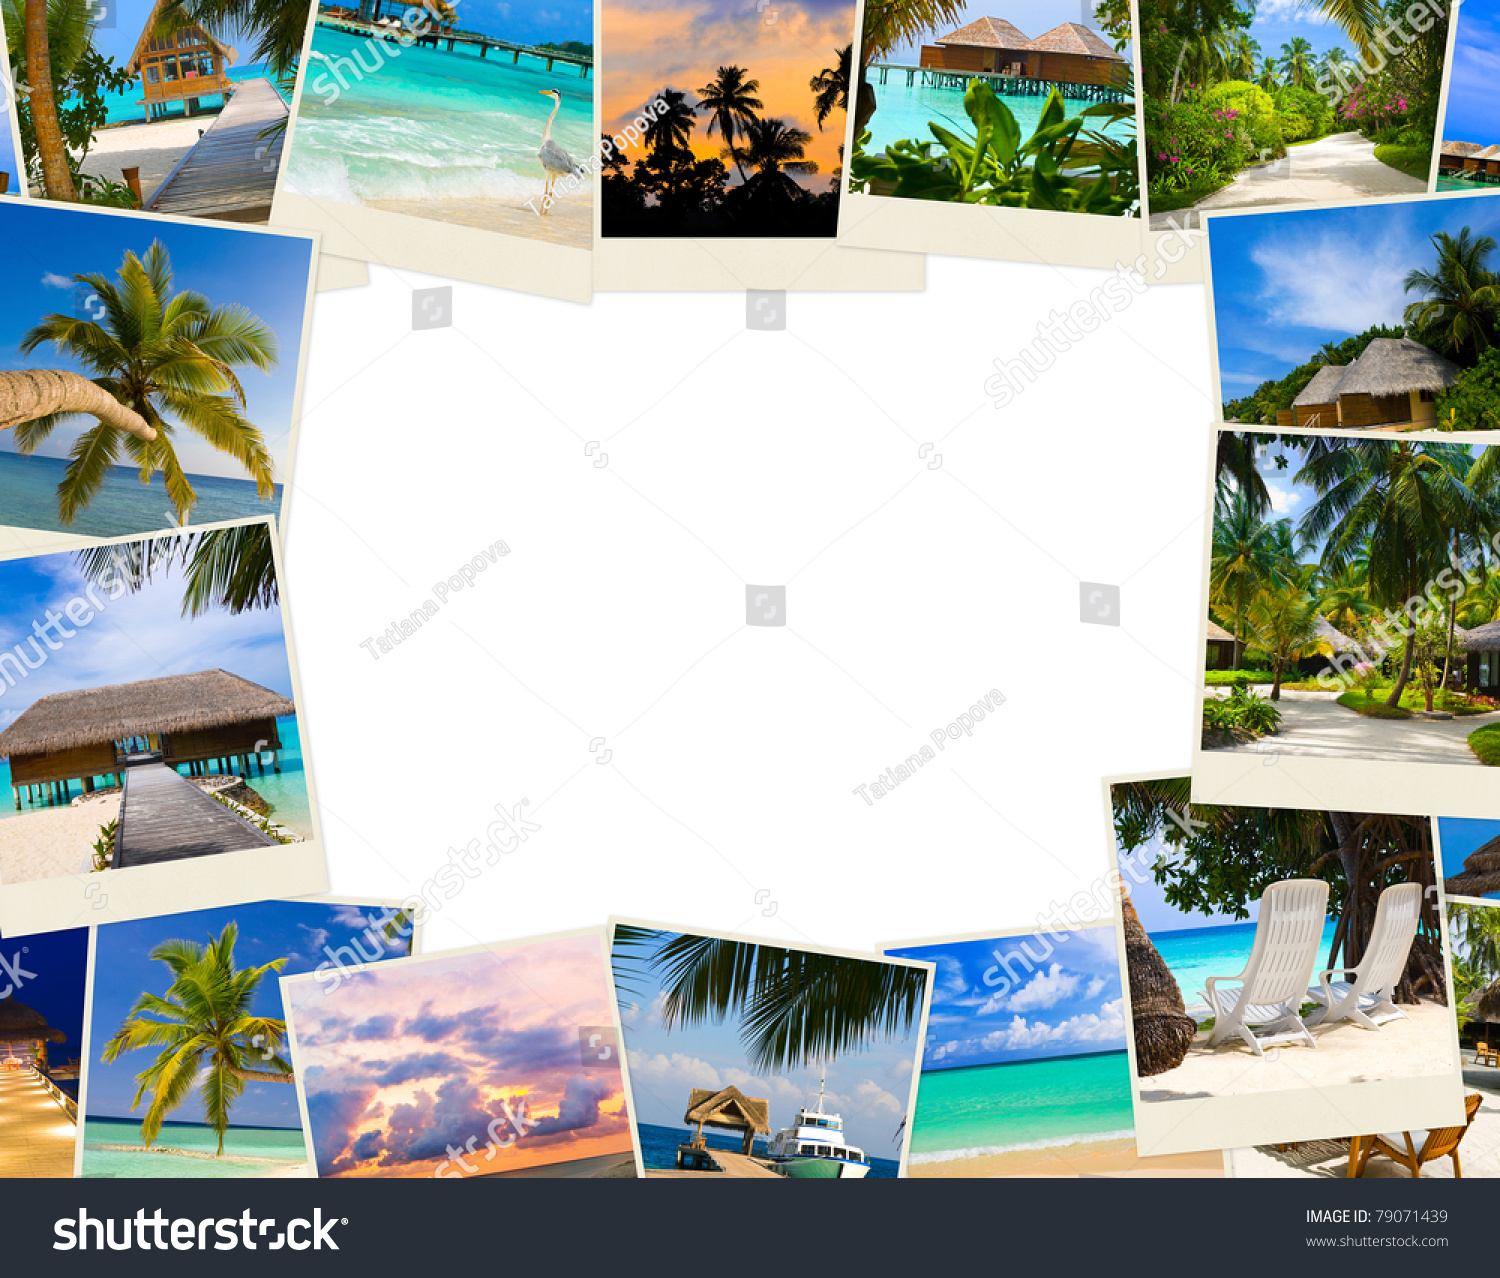 Vintage Beach Background Stock Photo 112981333: Frame Made Of Summer Beach Maldives Images